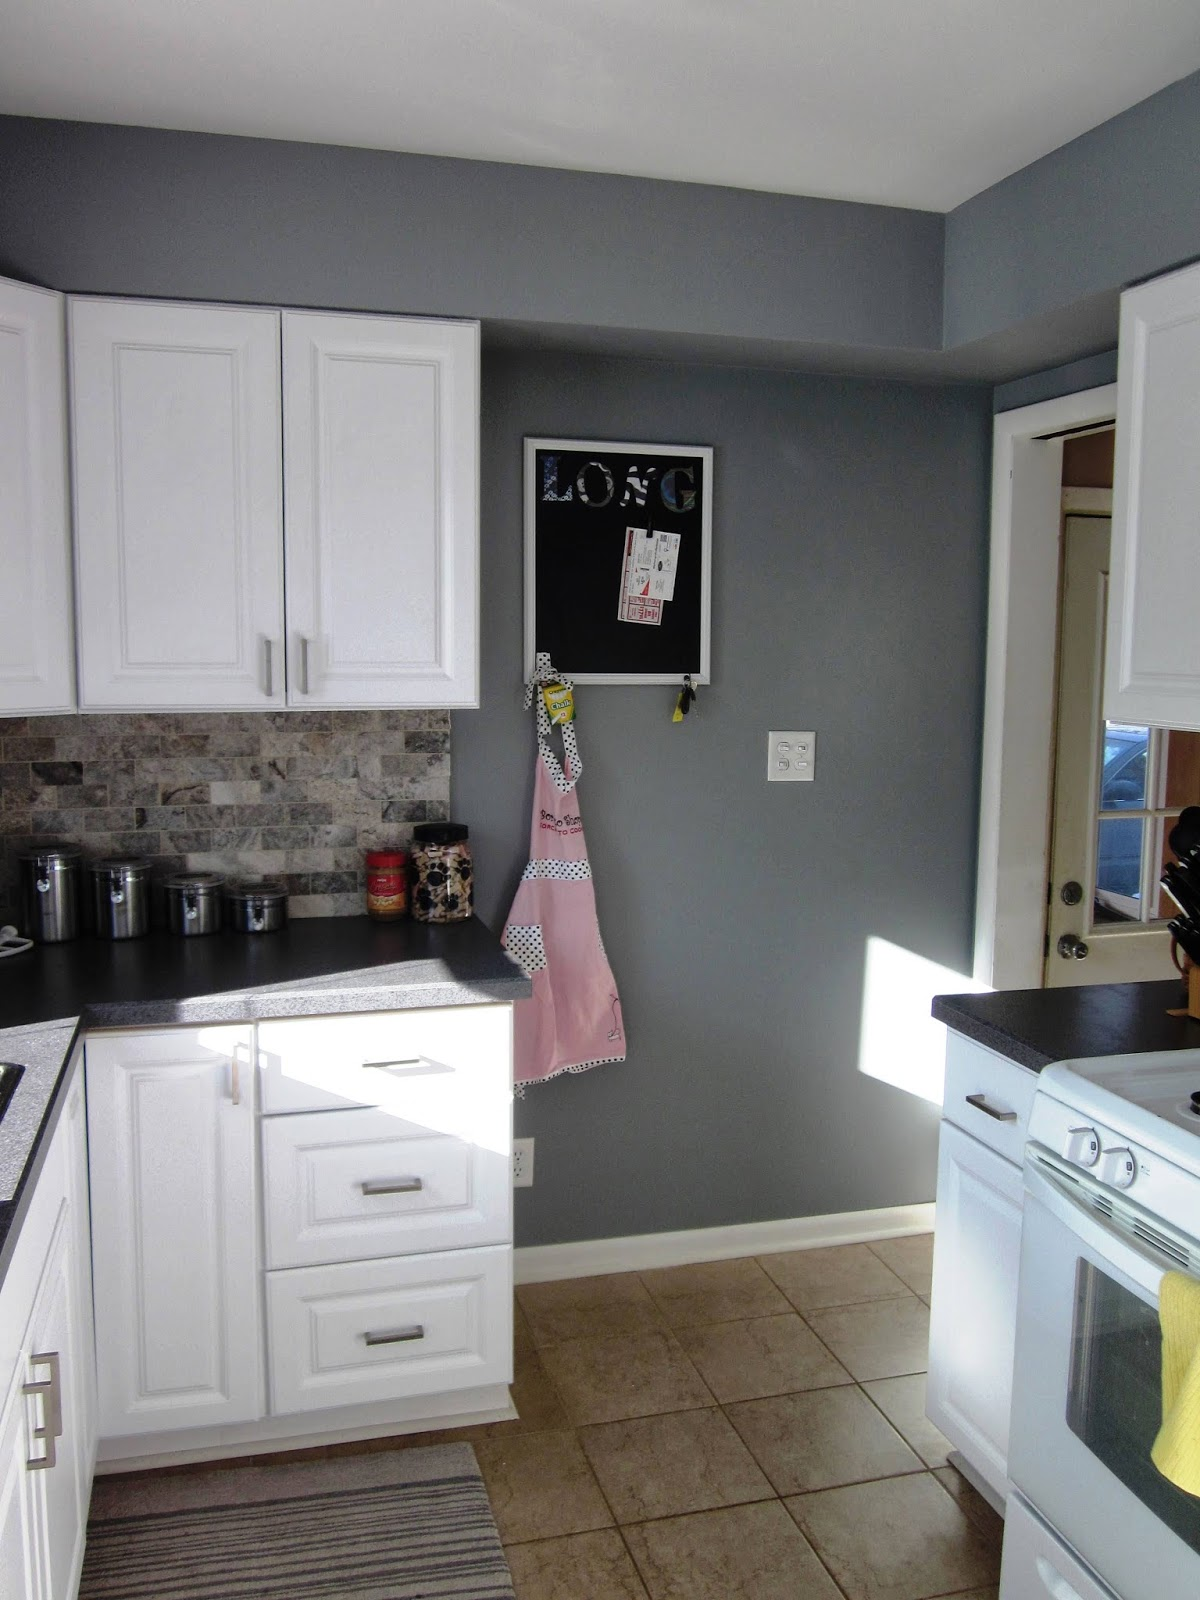 It's A Long Story: Kitchen Update: New Paint!